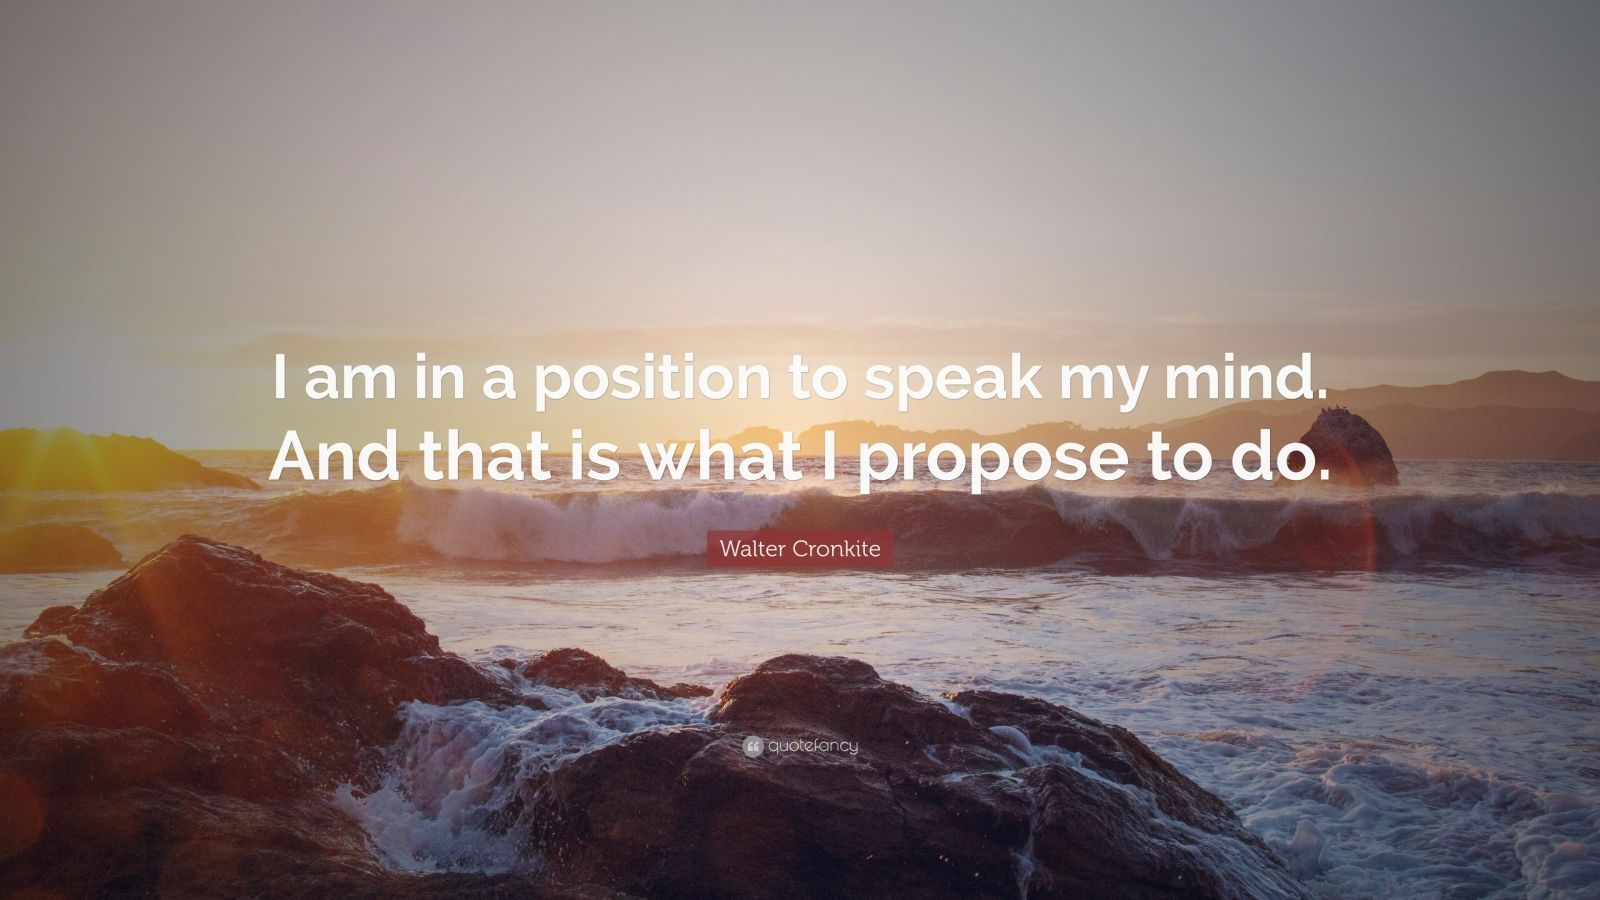 """Walter Cronkite Quote: """"I am in a position to speak my mind. And that is what I propose to do."""""""